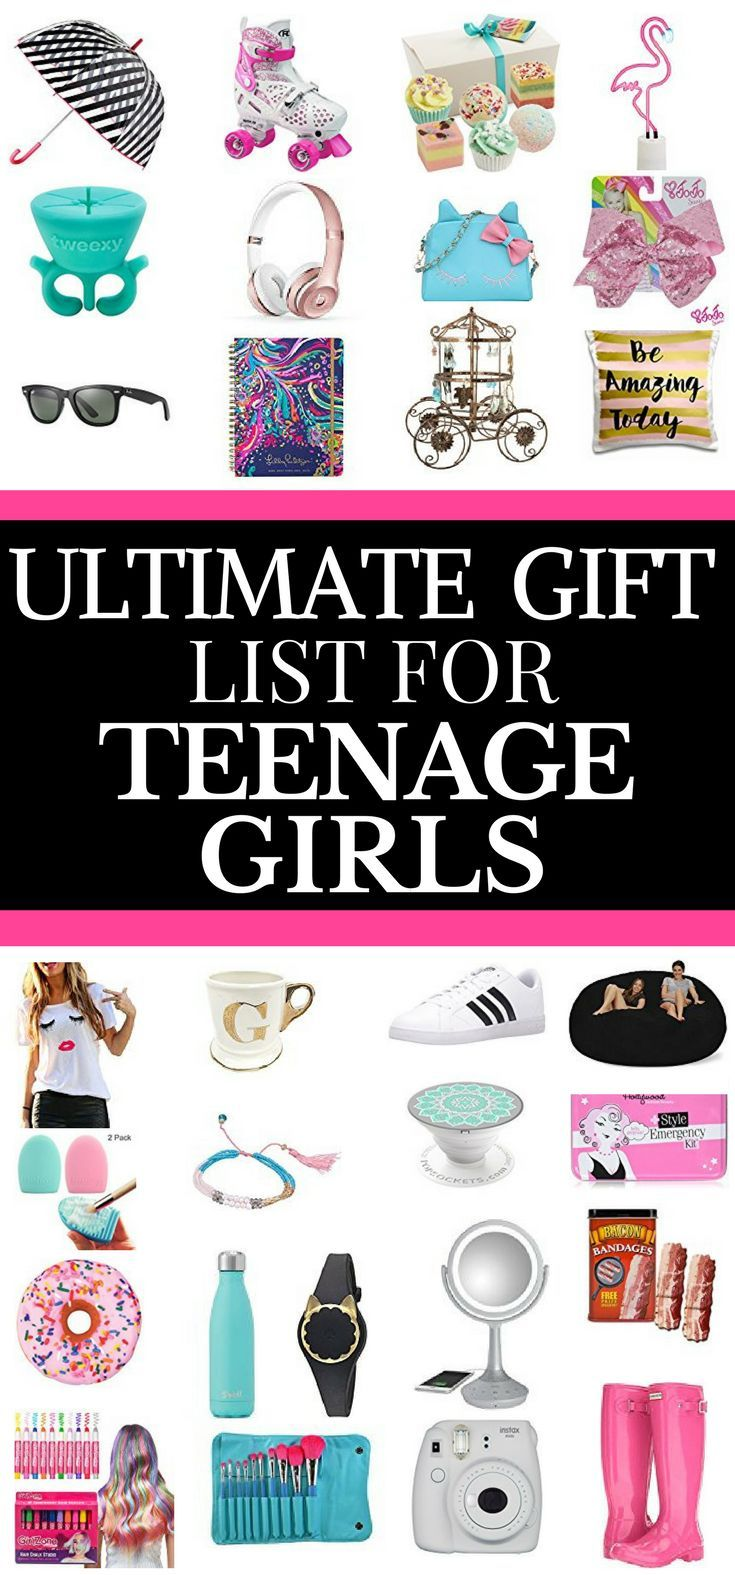 40 gifts for teen girls what teenage girls really want for christmas birthdays gift ideas pinterest gifts birthday gifts and gifts for teens - What Do Teens Want For Christmas